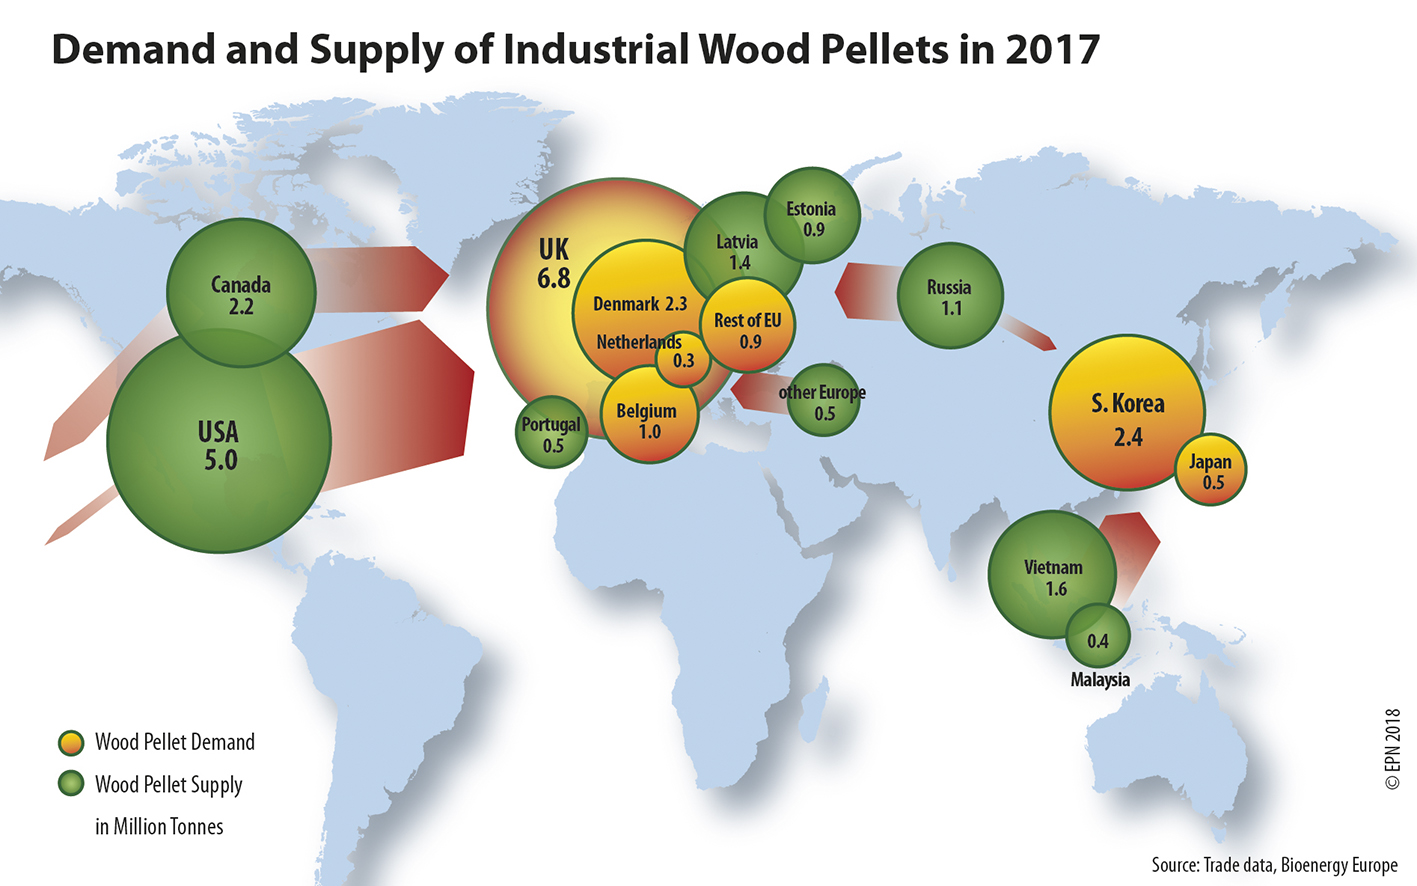 Demand and supply of industrial wood pellets 2017